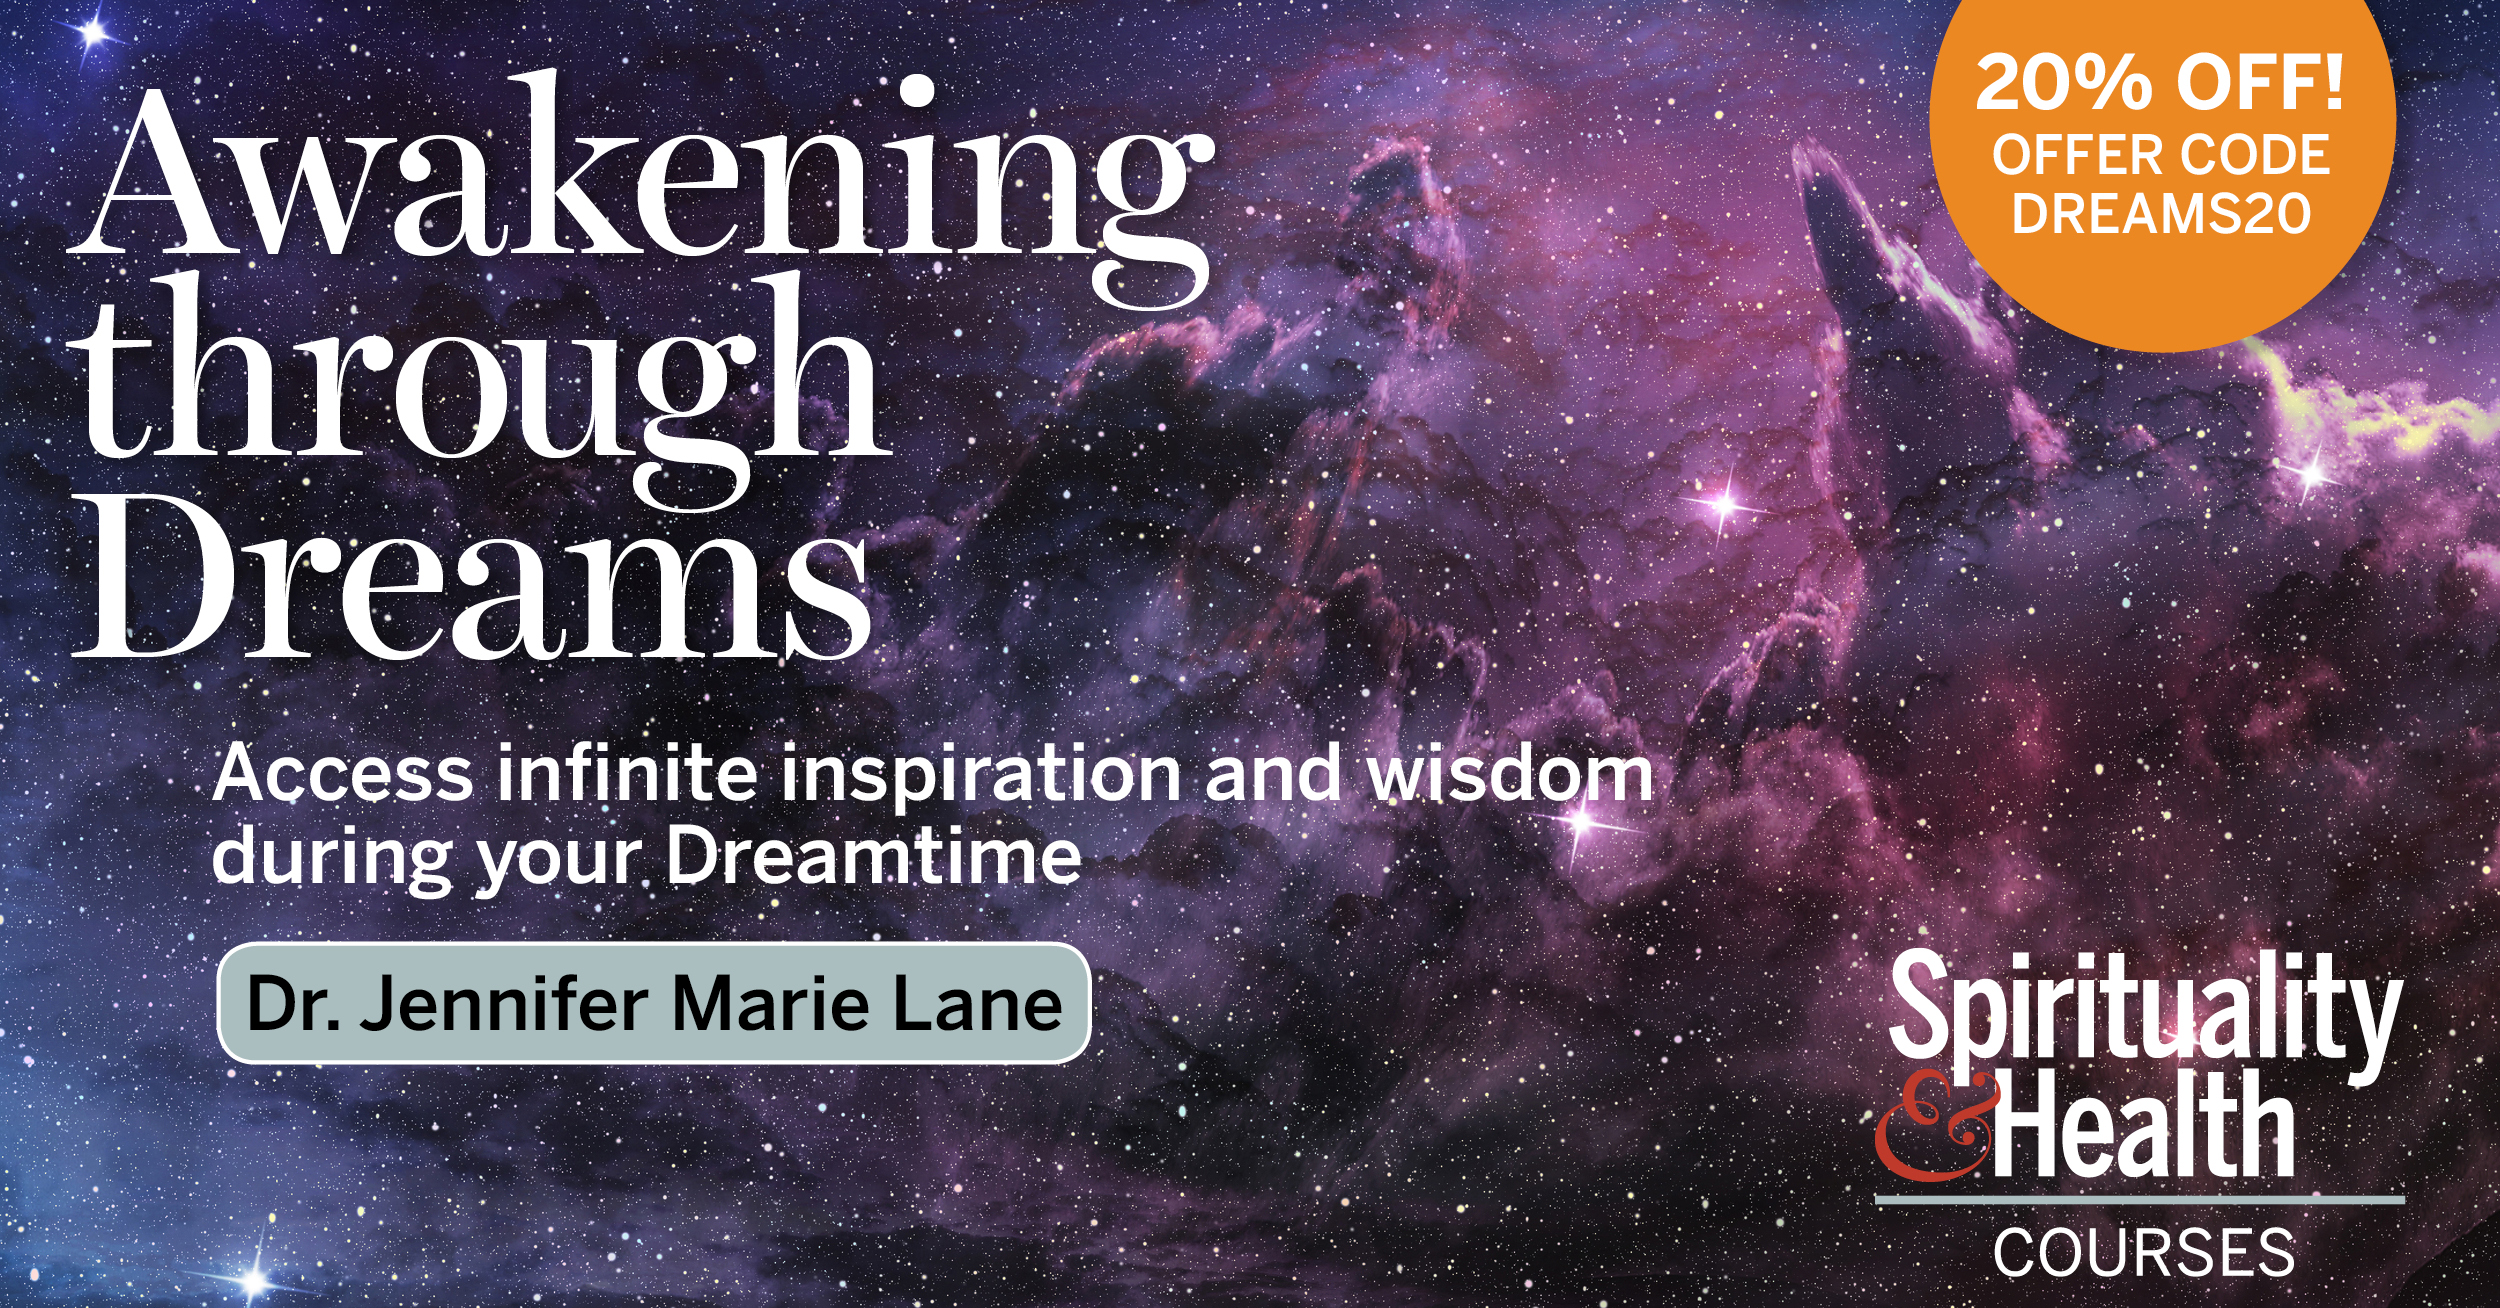 Awakening Through Dreams - A Spirituality & Health Online Course with Dr. Jennifer Marie Lane